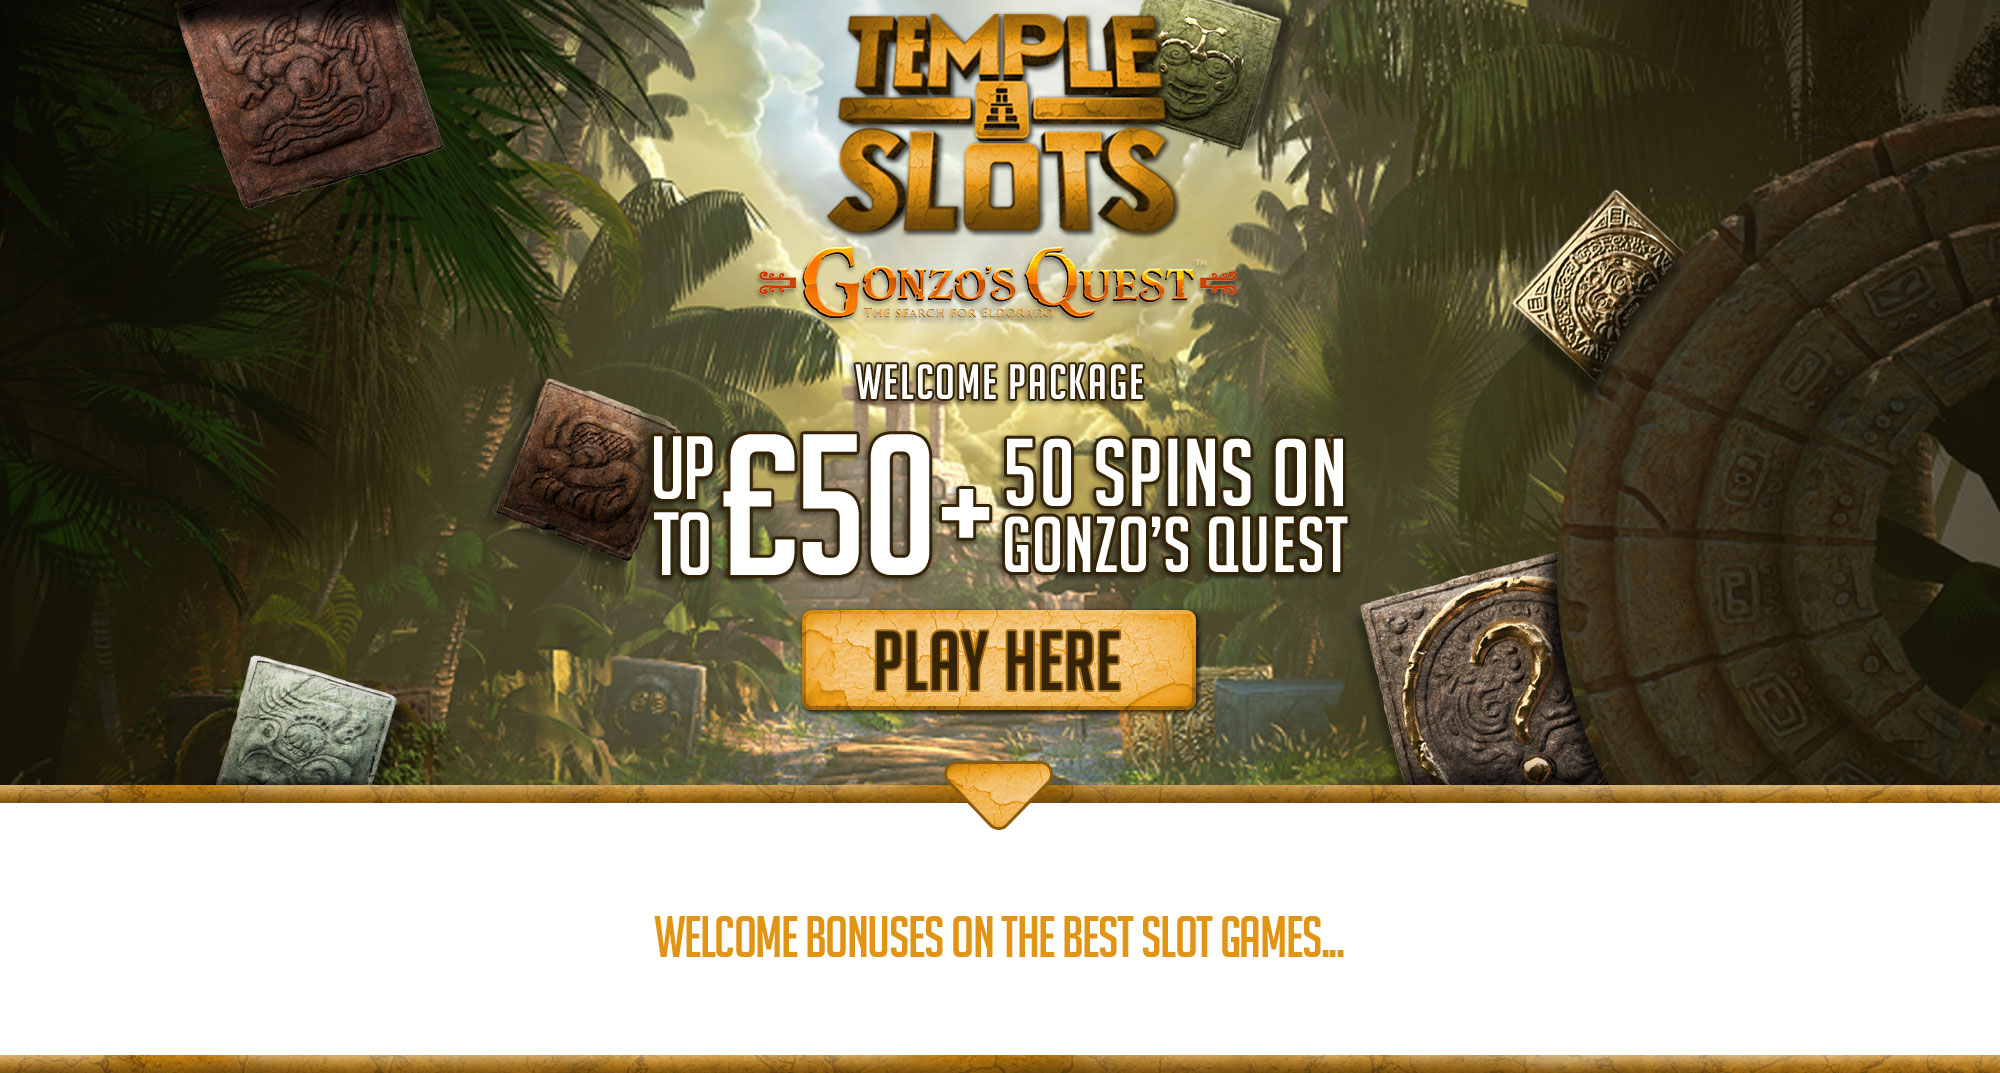 Temple Slots Welcome Package